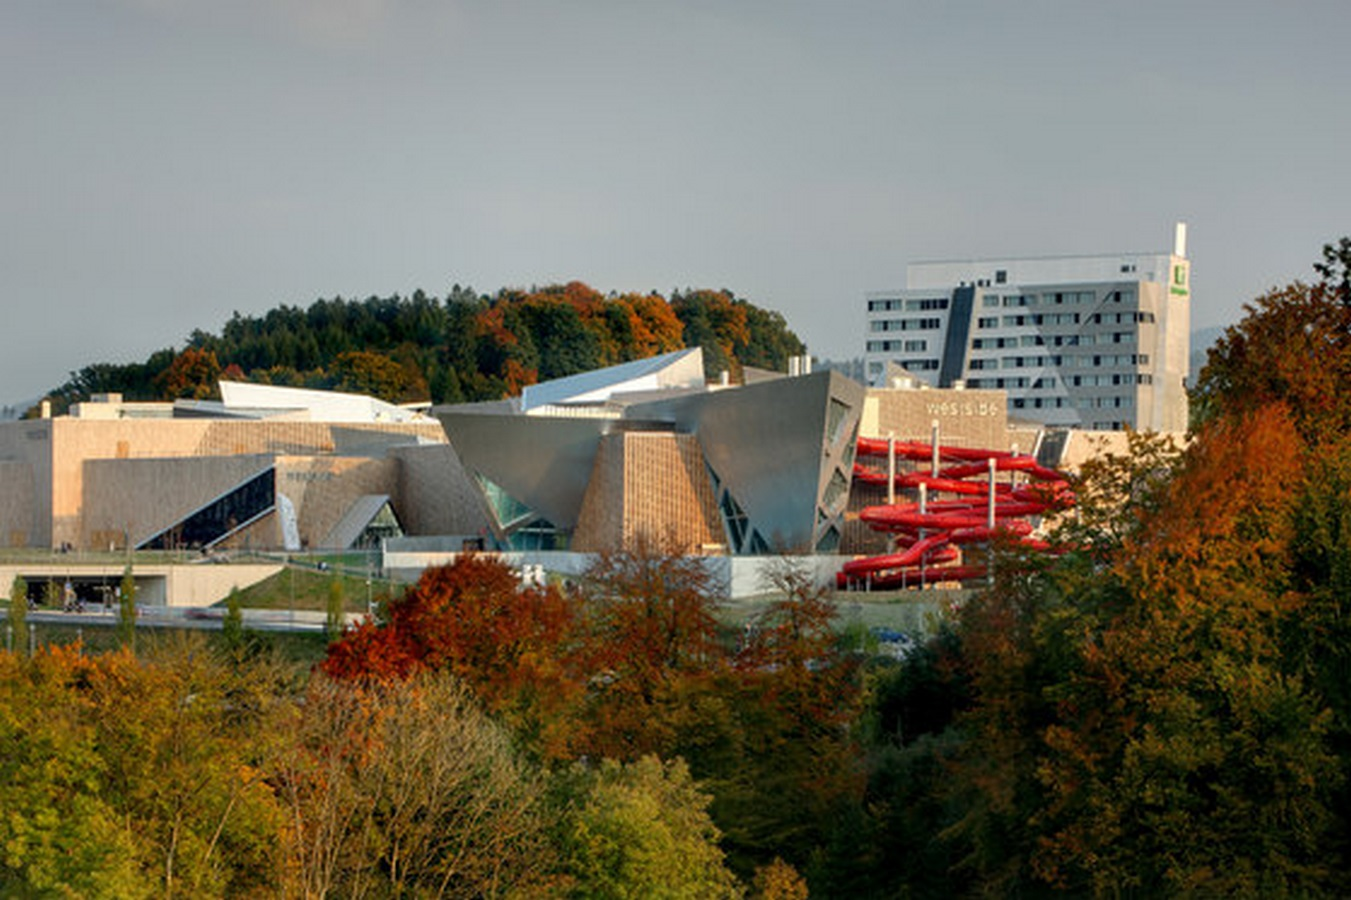 Westside Shopping and Leisure Centre by Daniel Libeskind: Unification of commerce, culture and leisure - Sheet4